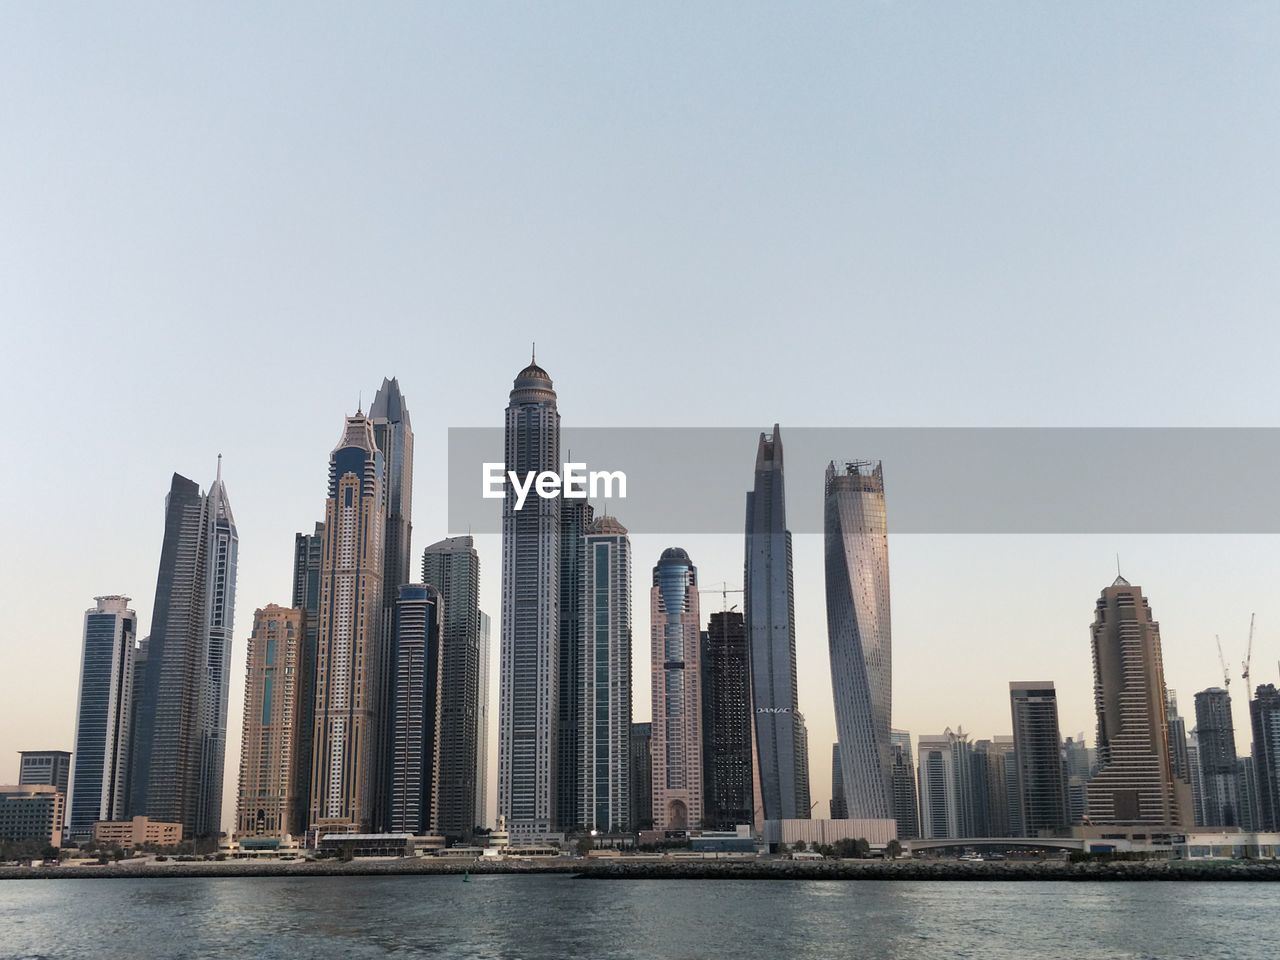 skyscraper, architecture, tall - high, built structure, building exterior, city, urban skyline, tower, clear sky, modern, waterfront, financial district, travel destinations, water, cityscape, tourism, downtown district, sky, river, outdoors, day, no people